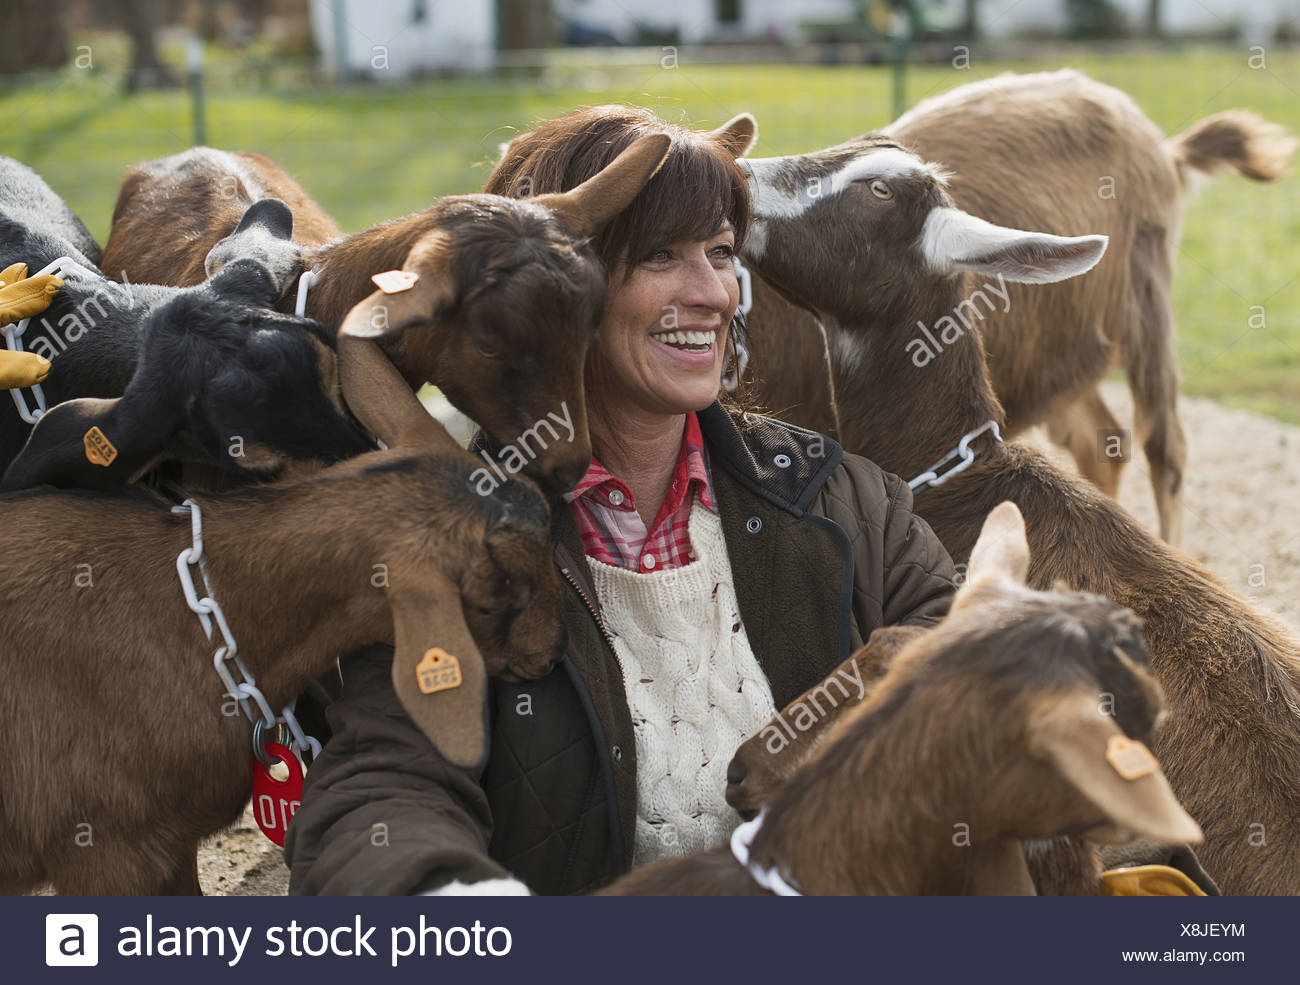 Farmer working and tending to the animals - Stock Image